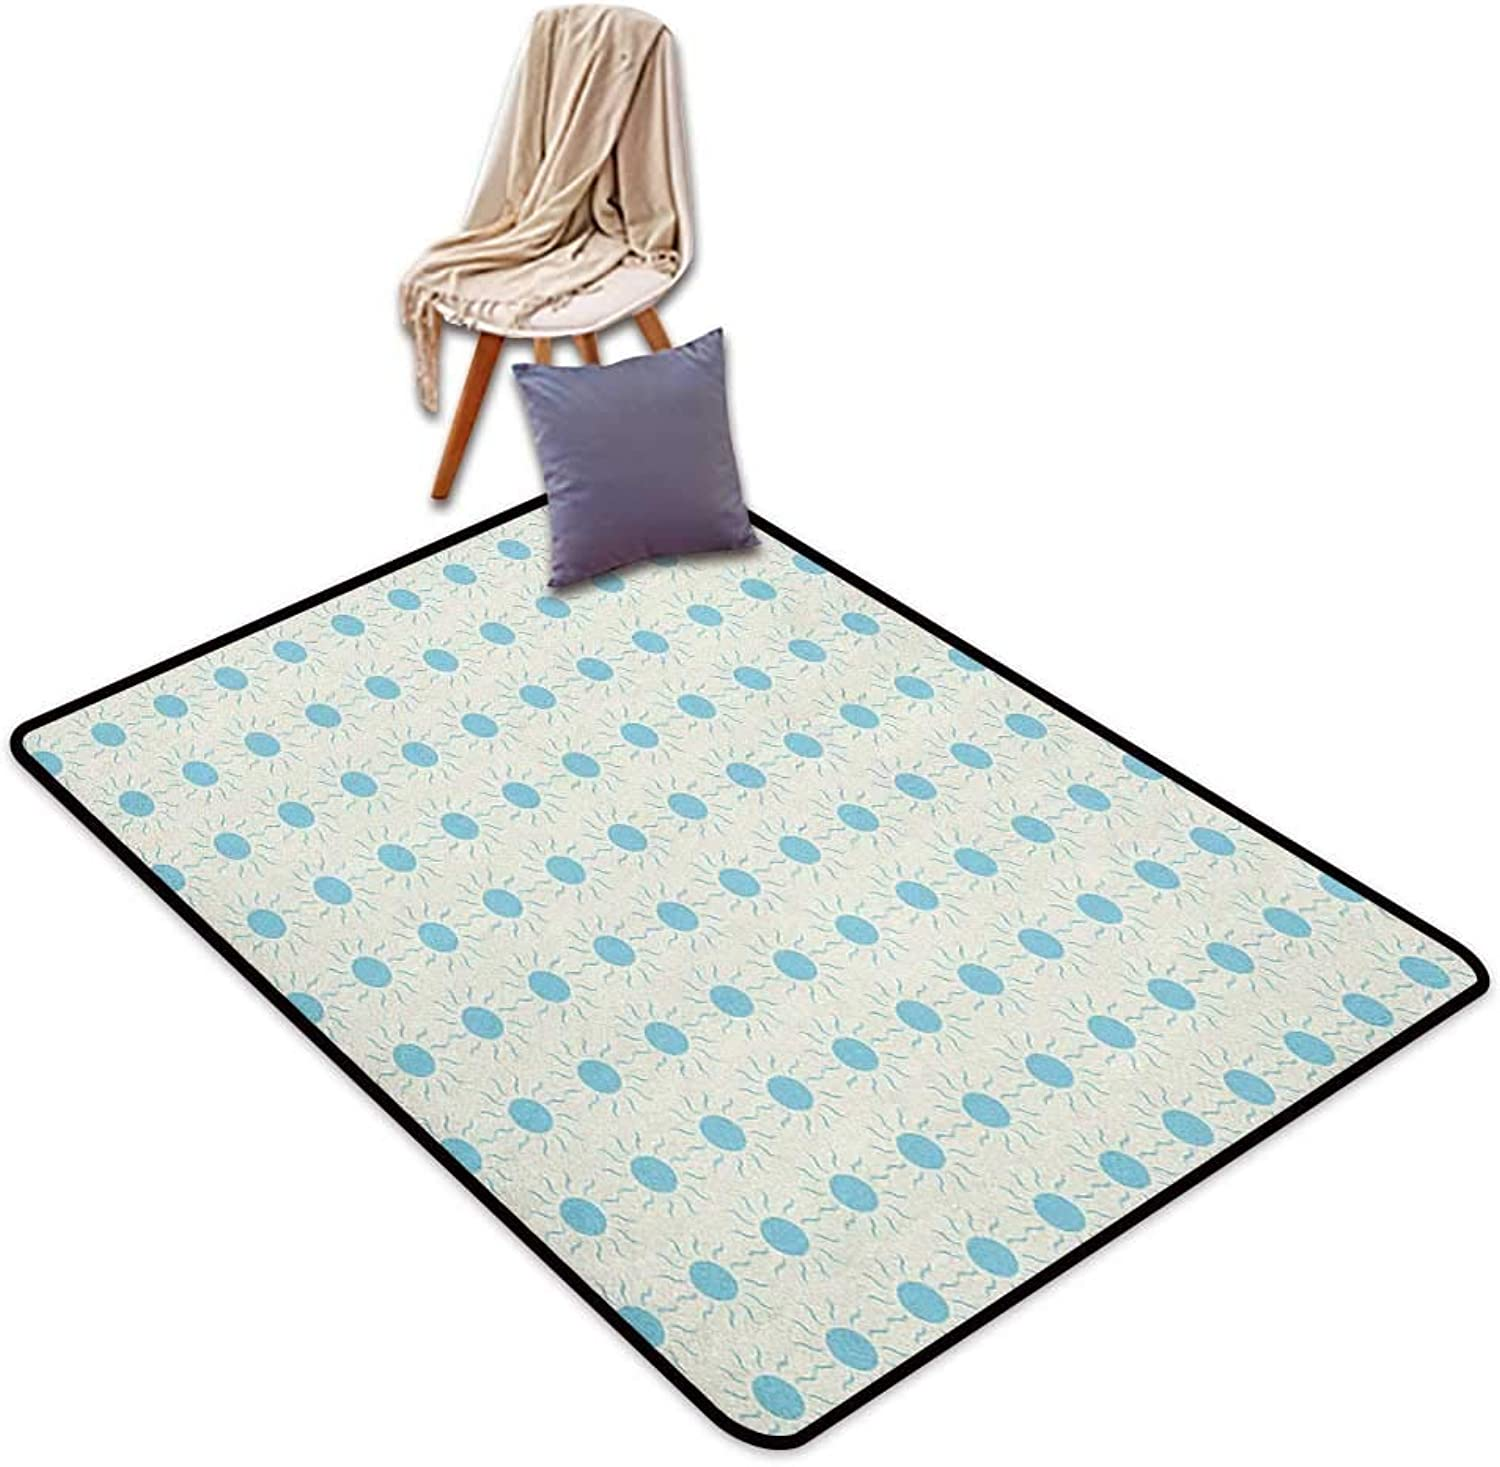 Non-Slip Carpet Aqua bluee Sun Shape Circle and Swirl Sweet Aquatic Summer Themed Abstract Design Print Outside The Door Rug W5'xL8'